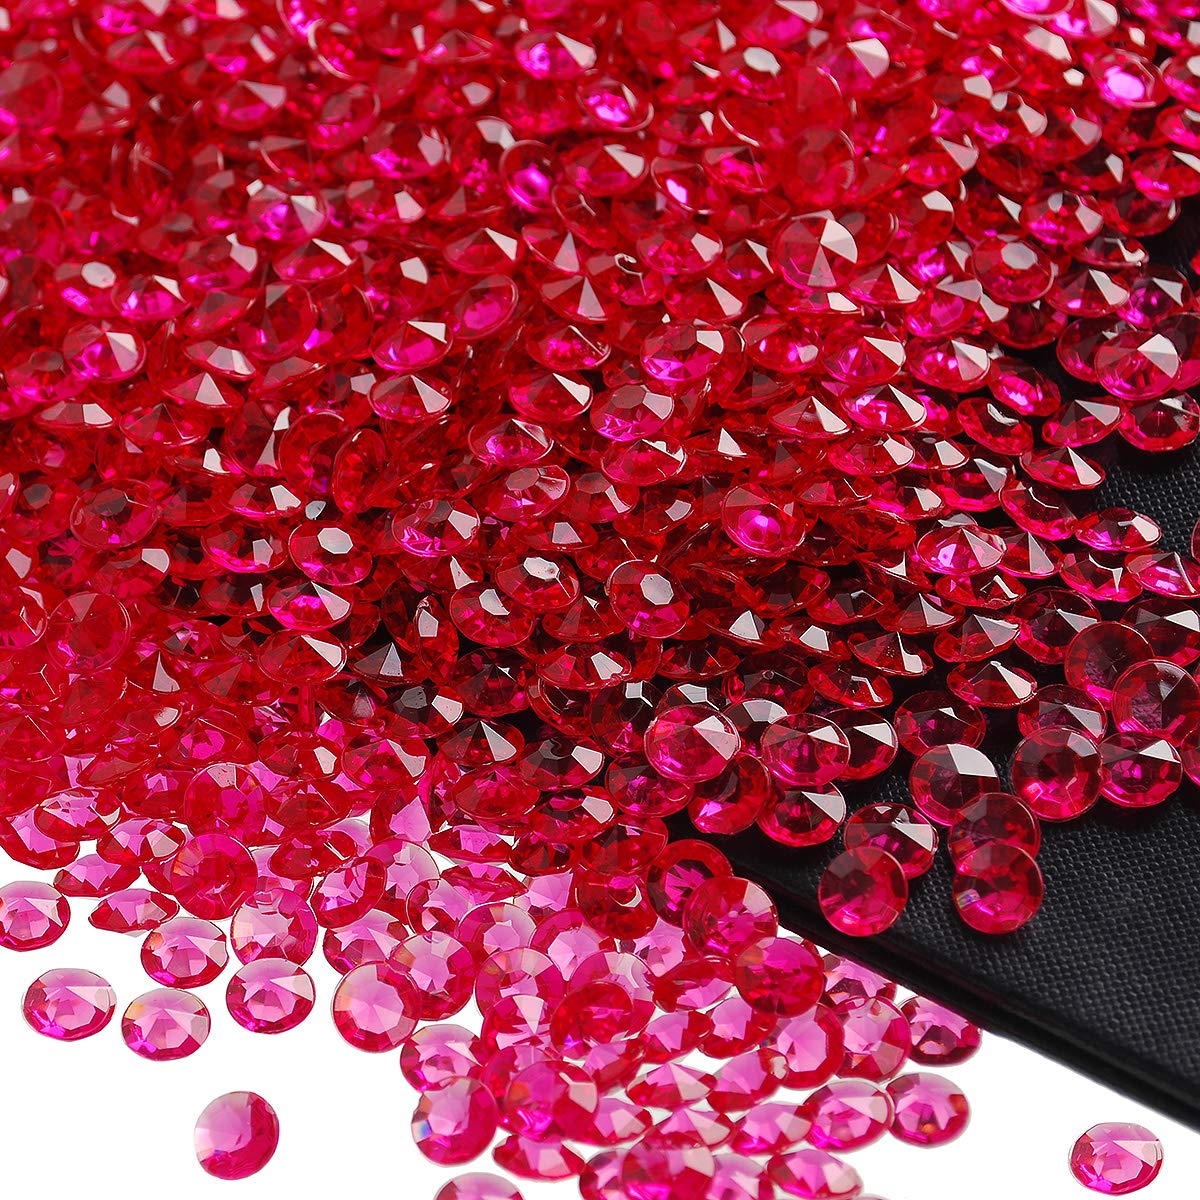 craftjoje 4.5MM 10000pcs Wedding Table Scattering Crystals Acrylic Diamonds Wedding Bridal Shower Party Decorations Vase Fillers 4.5mm, Burgundy